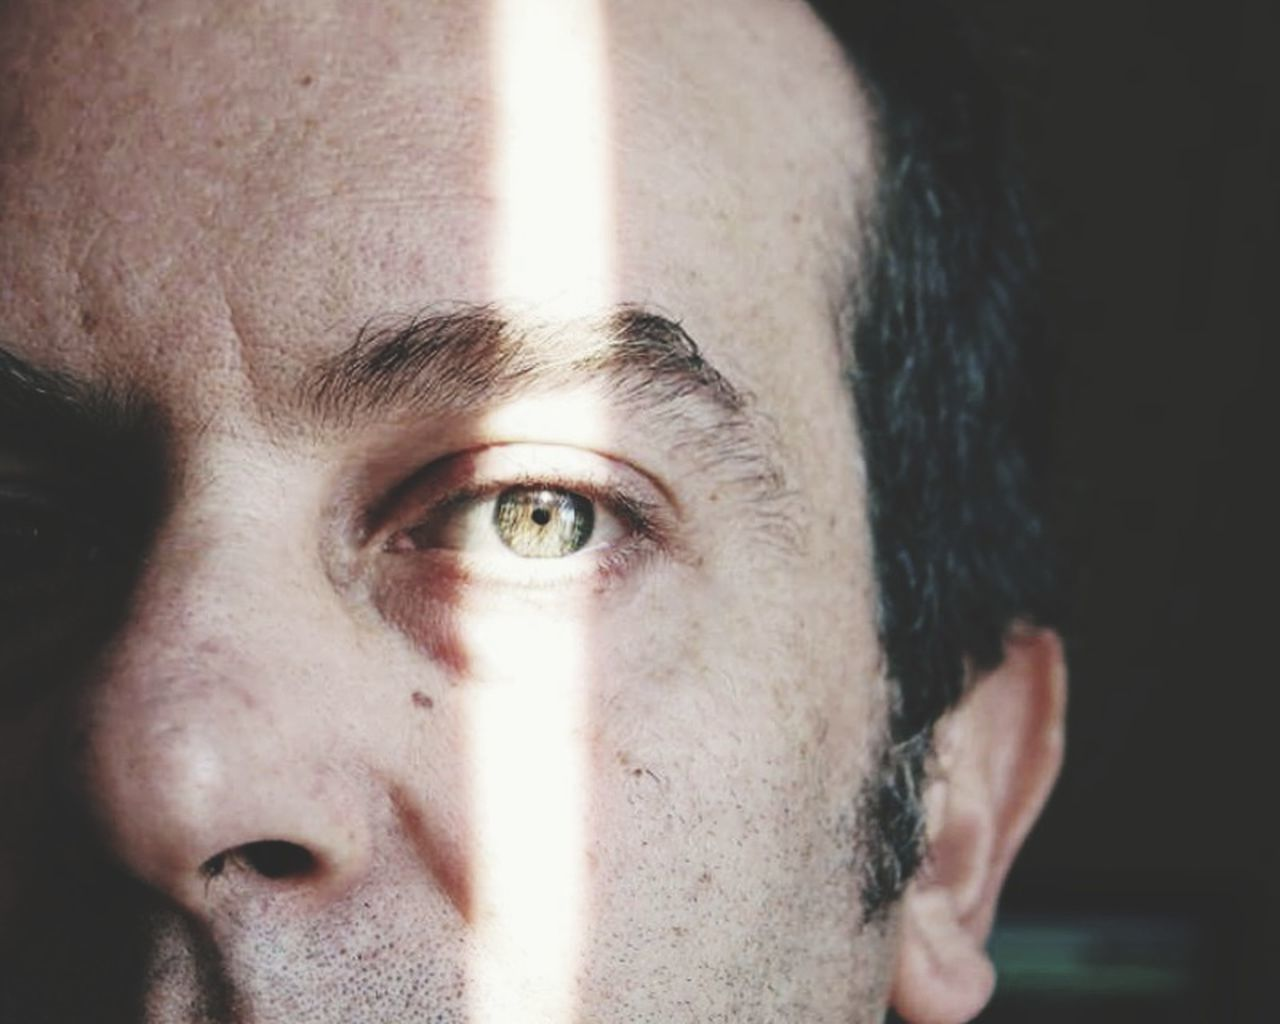 human eye, one person, human face, portrait, close-up, human body part, looking at camera, real people, eyebrow, headshot, indoors, eyesight, young adult, one man only, day, eyeball, eyelash, adult, people, adults only